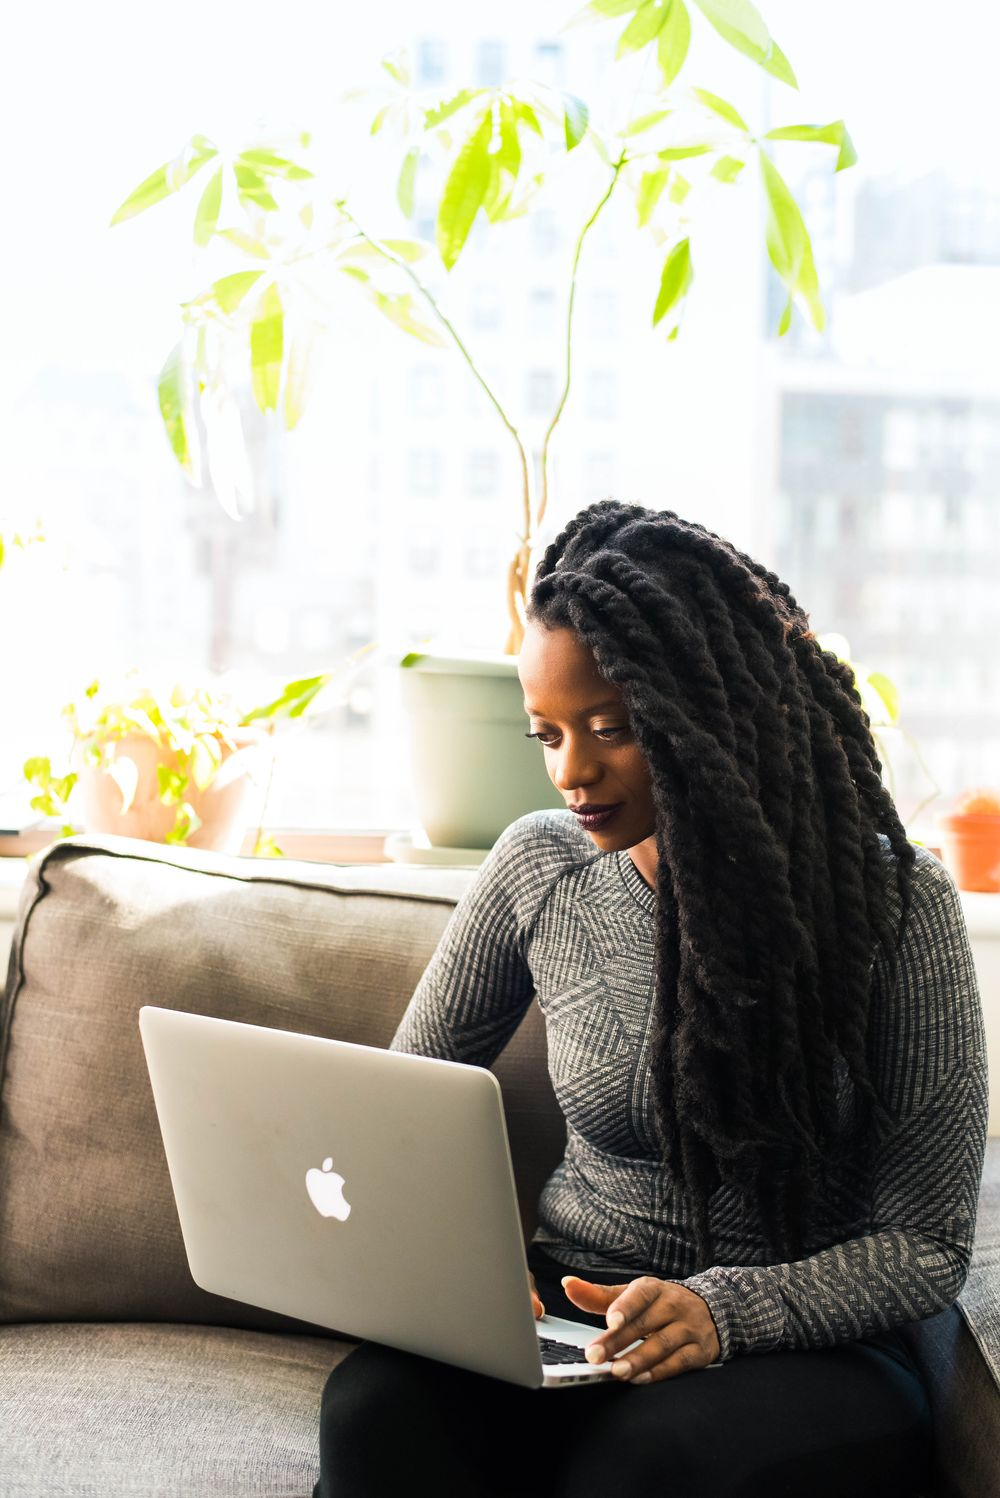 A woman with long, braided hair uses a laptop while sitting on a couch; she is perhaps a social media manager, one of the best jobs that allow you to work from home